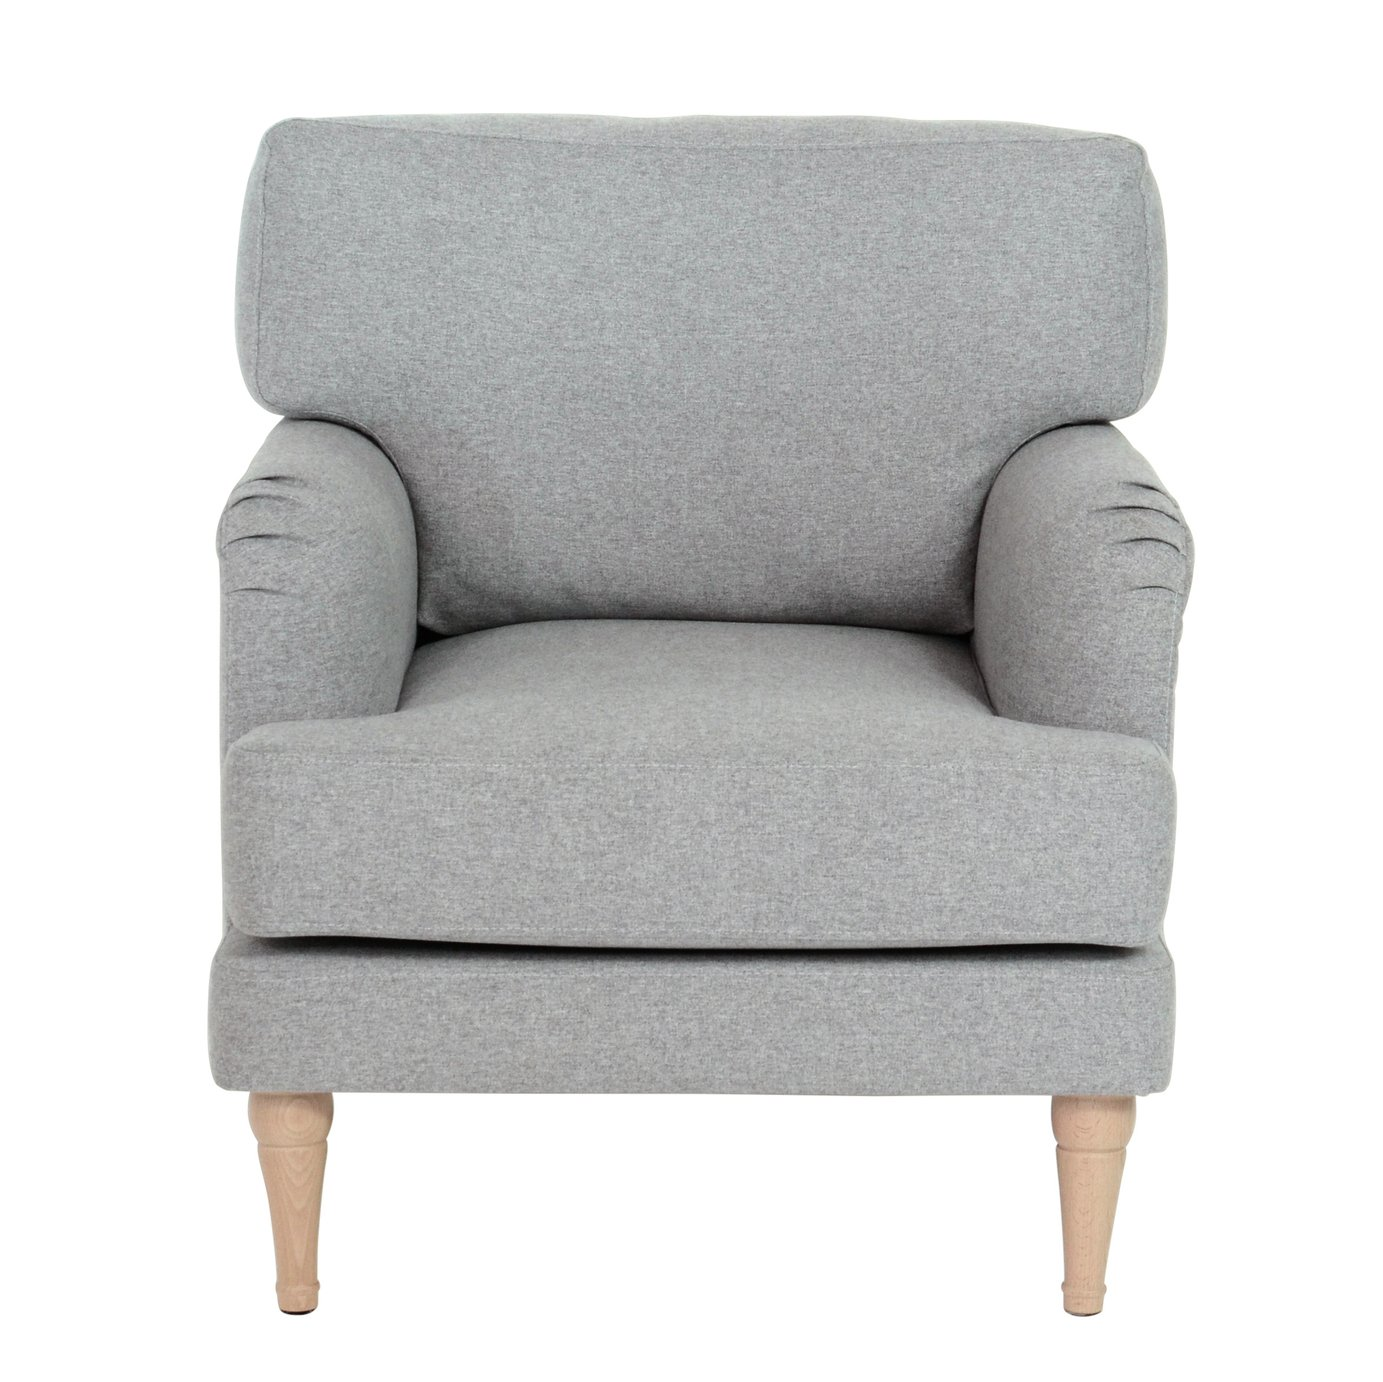 Argos Home Dune Fabric Armchair - Light Grey